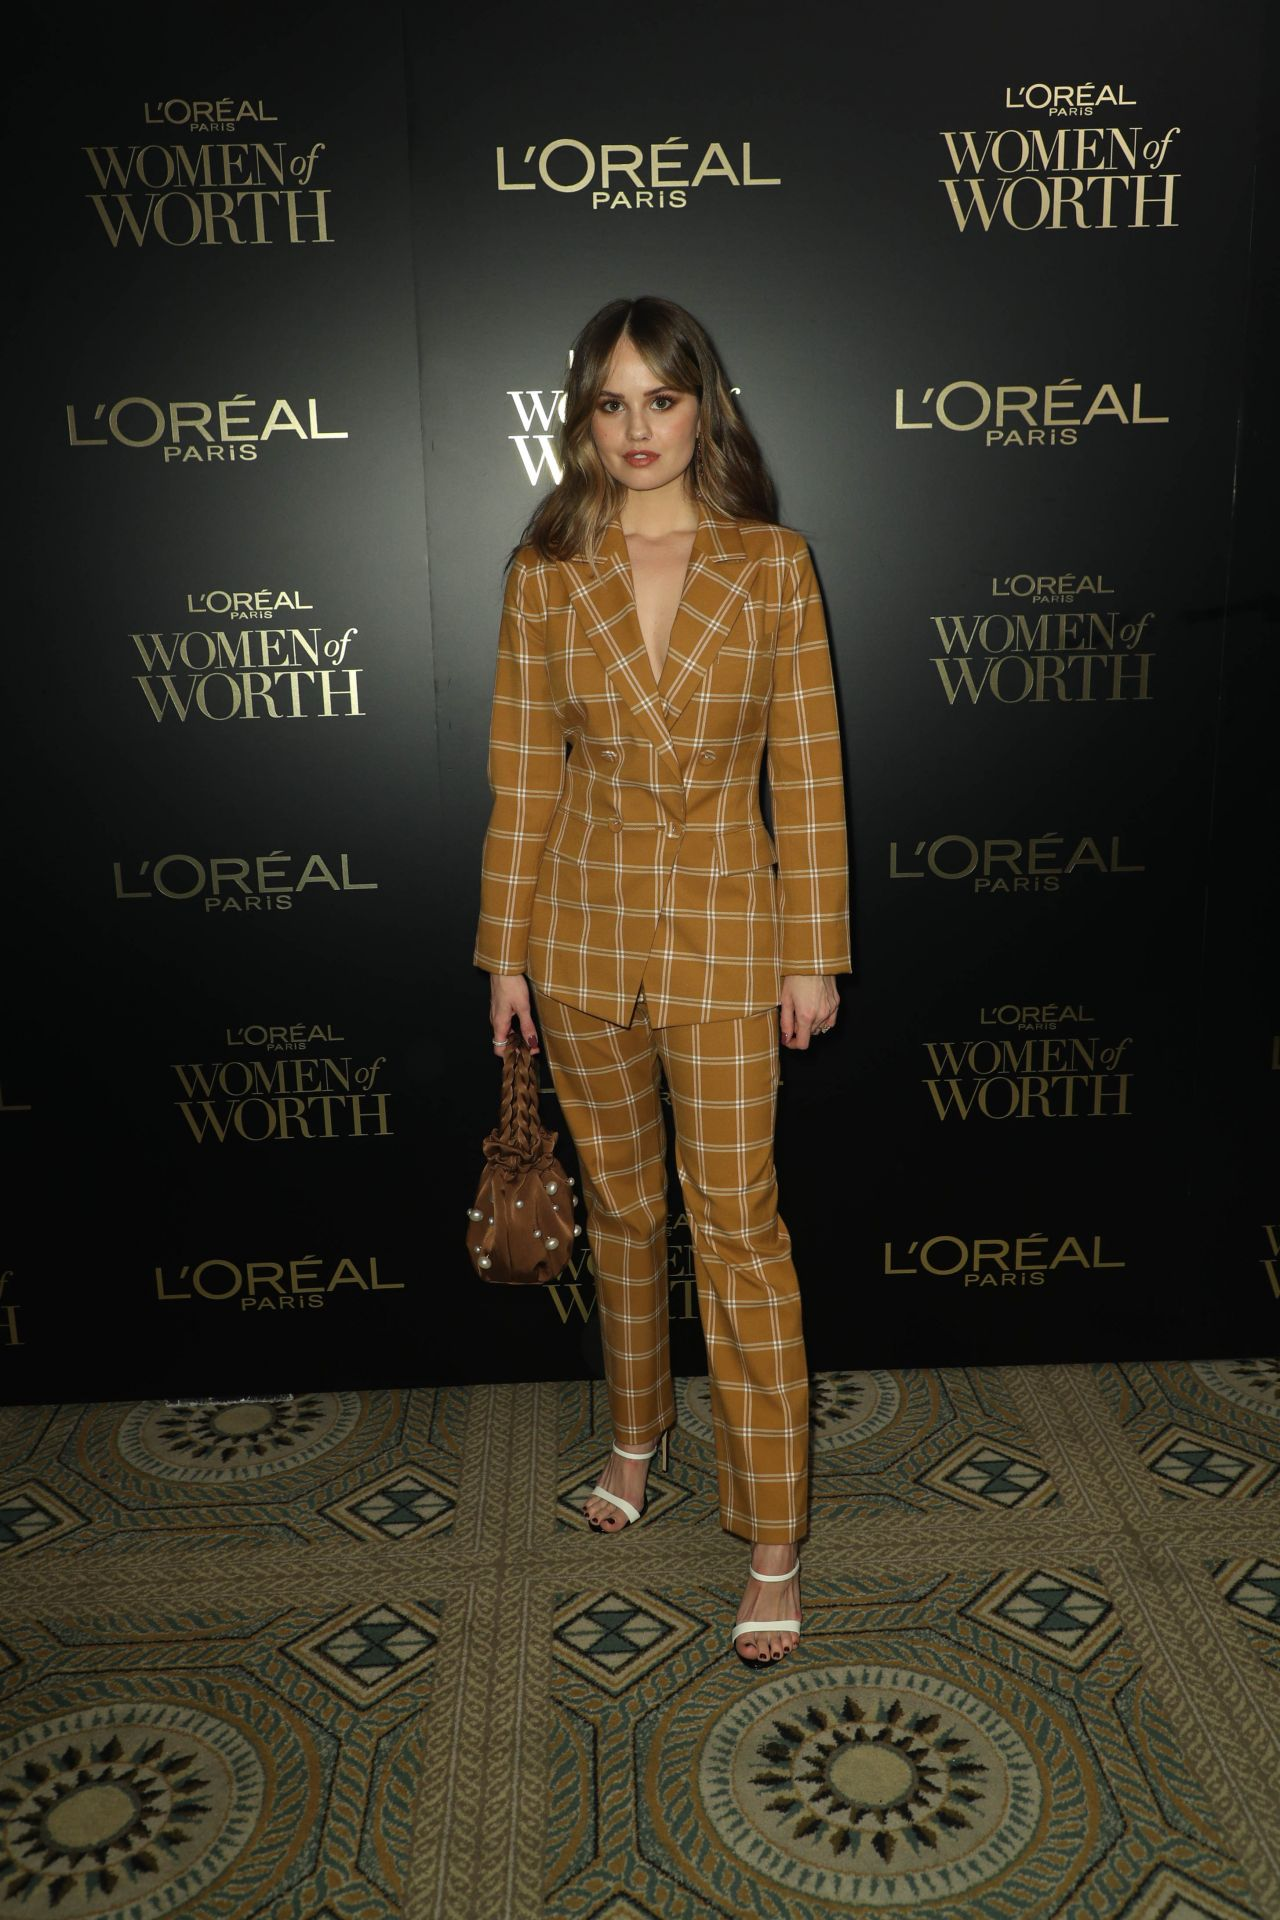 debby-ryan-in-jonathan-simkhai-suit-2019-loreal-paris-women-of-worth-awards